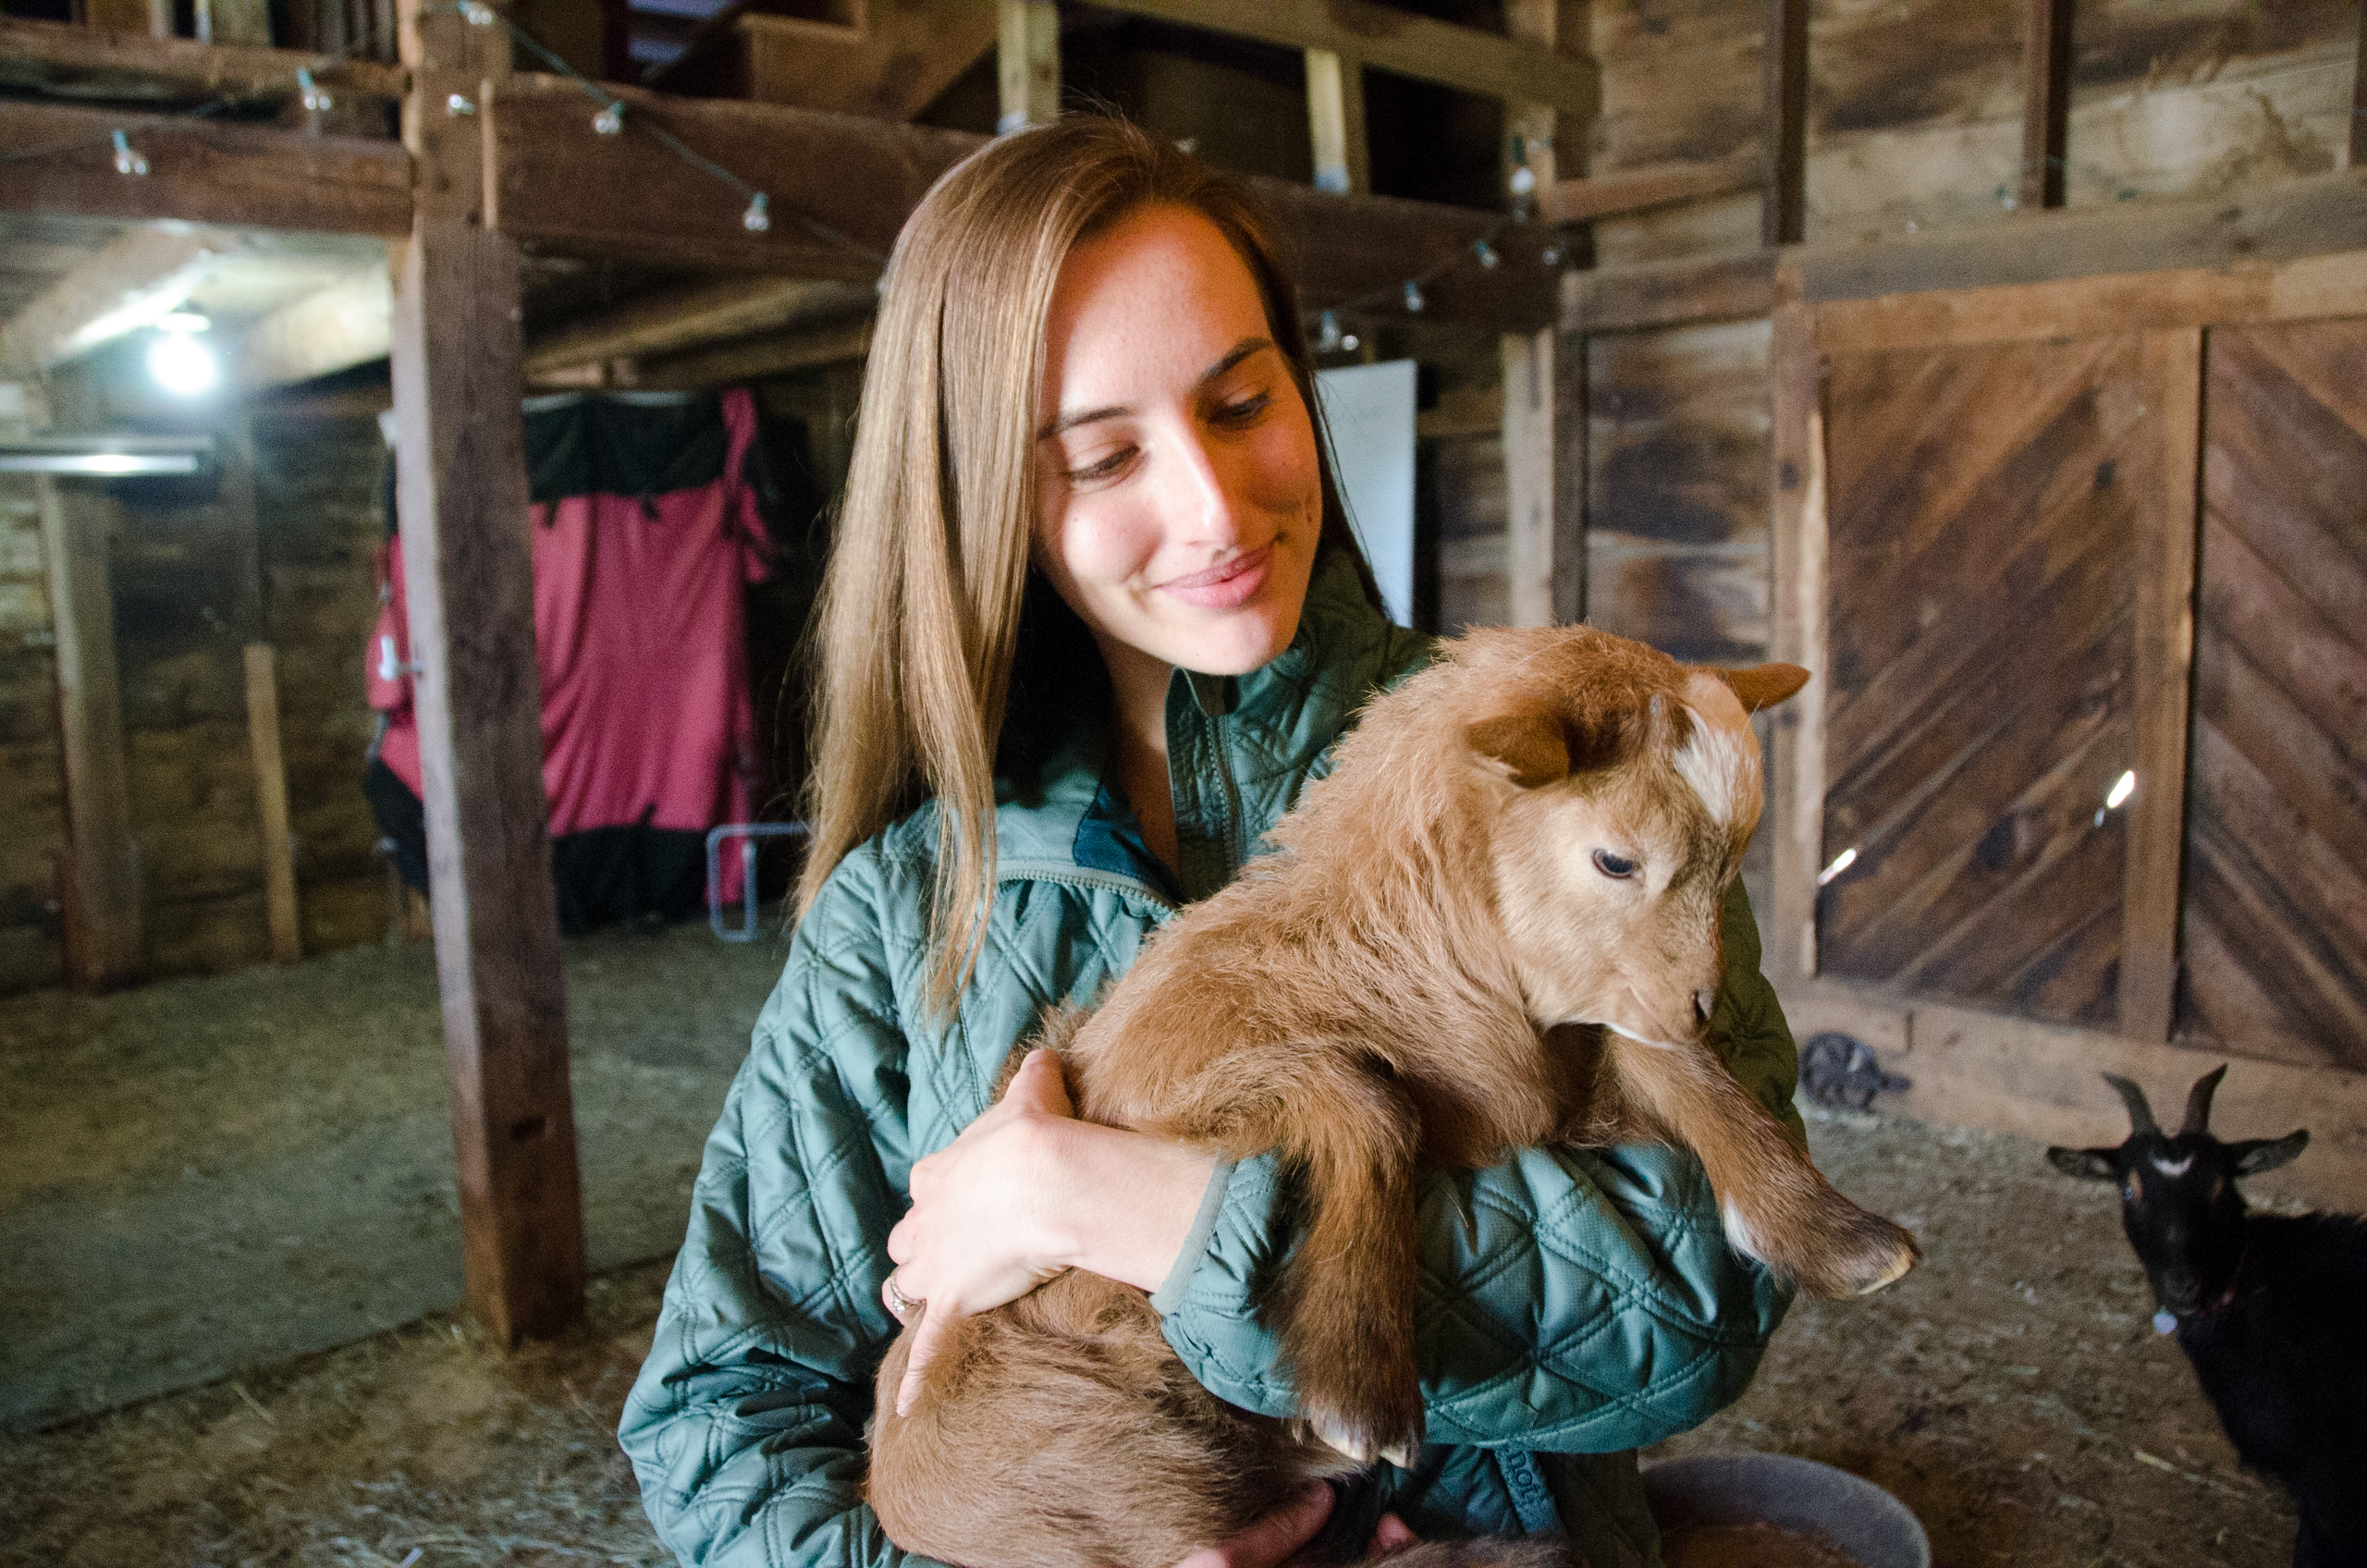 Samantha Sundermeyer with a baby goat at Cultivate Care Farm